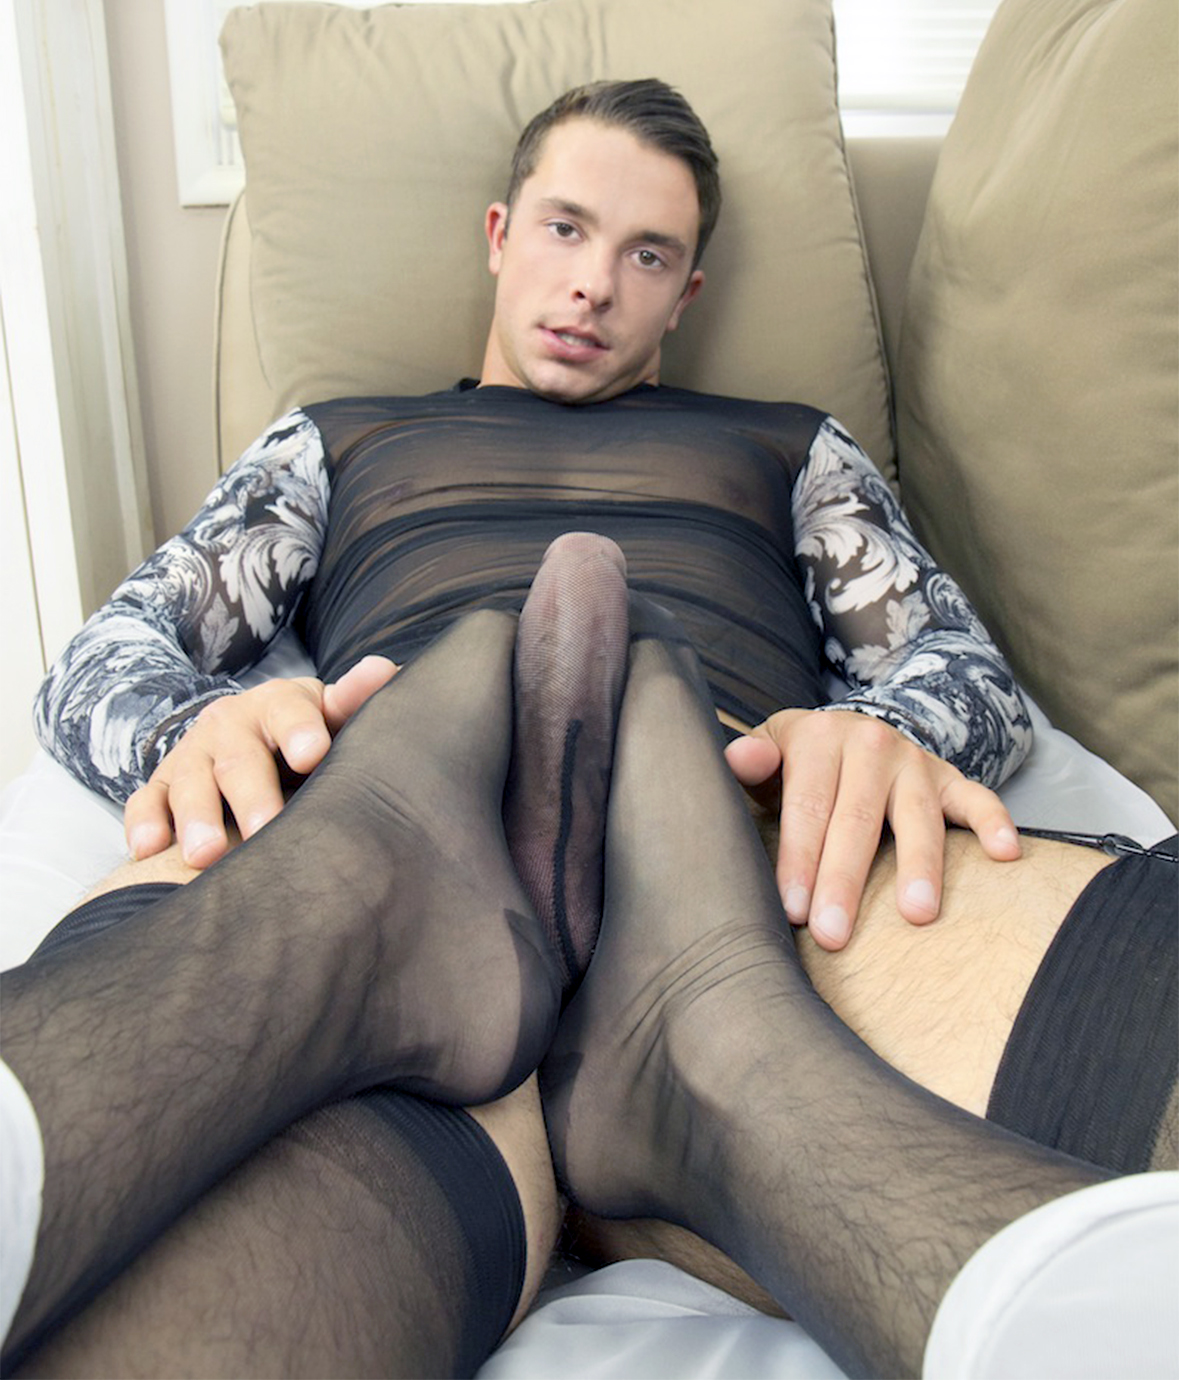 Men wearing nylon pantyhose